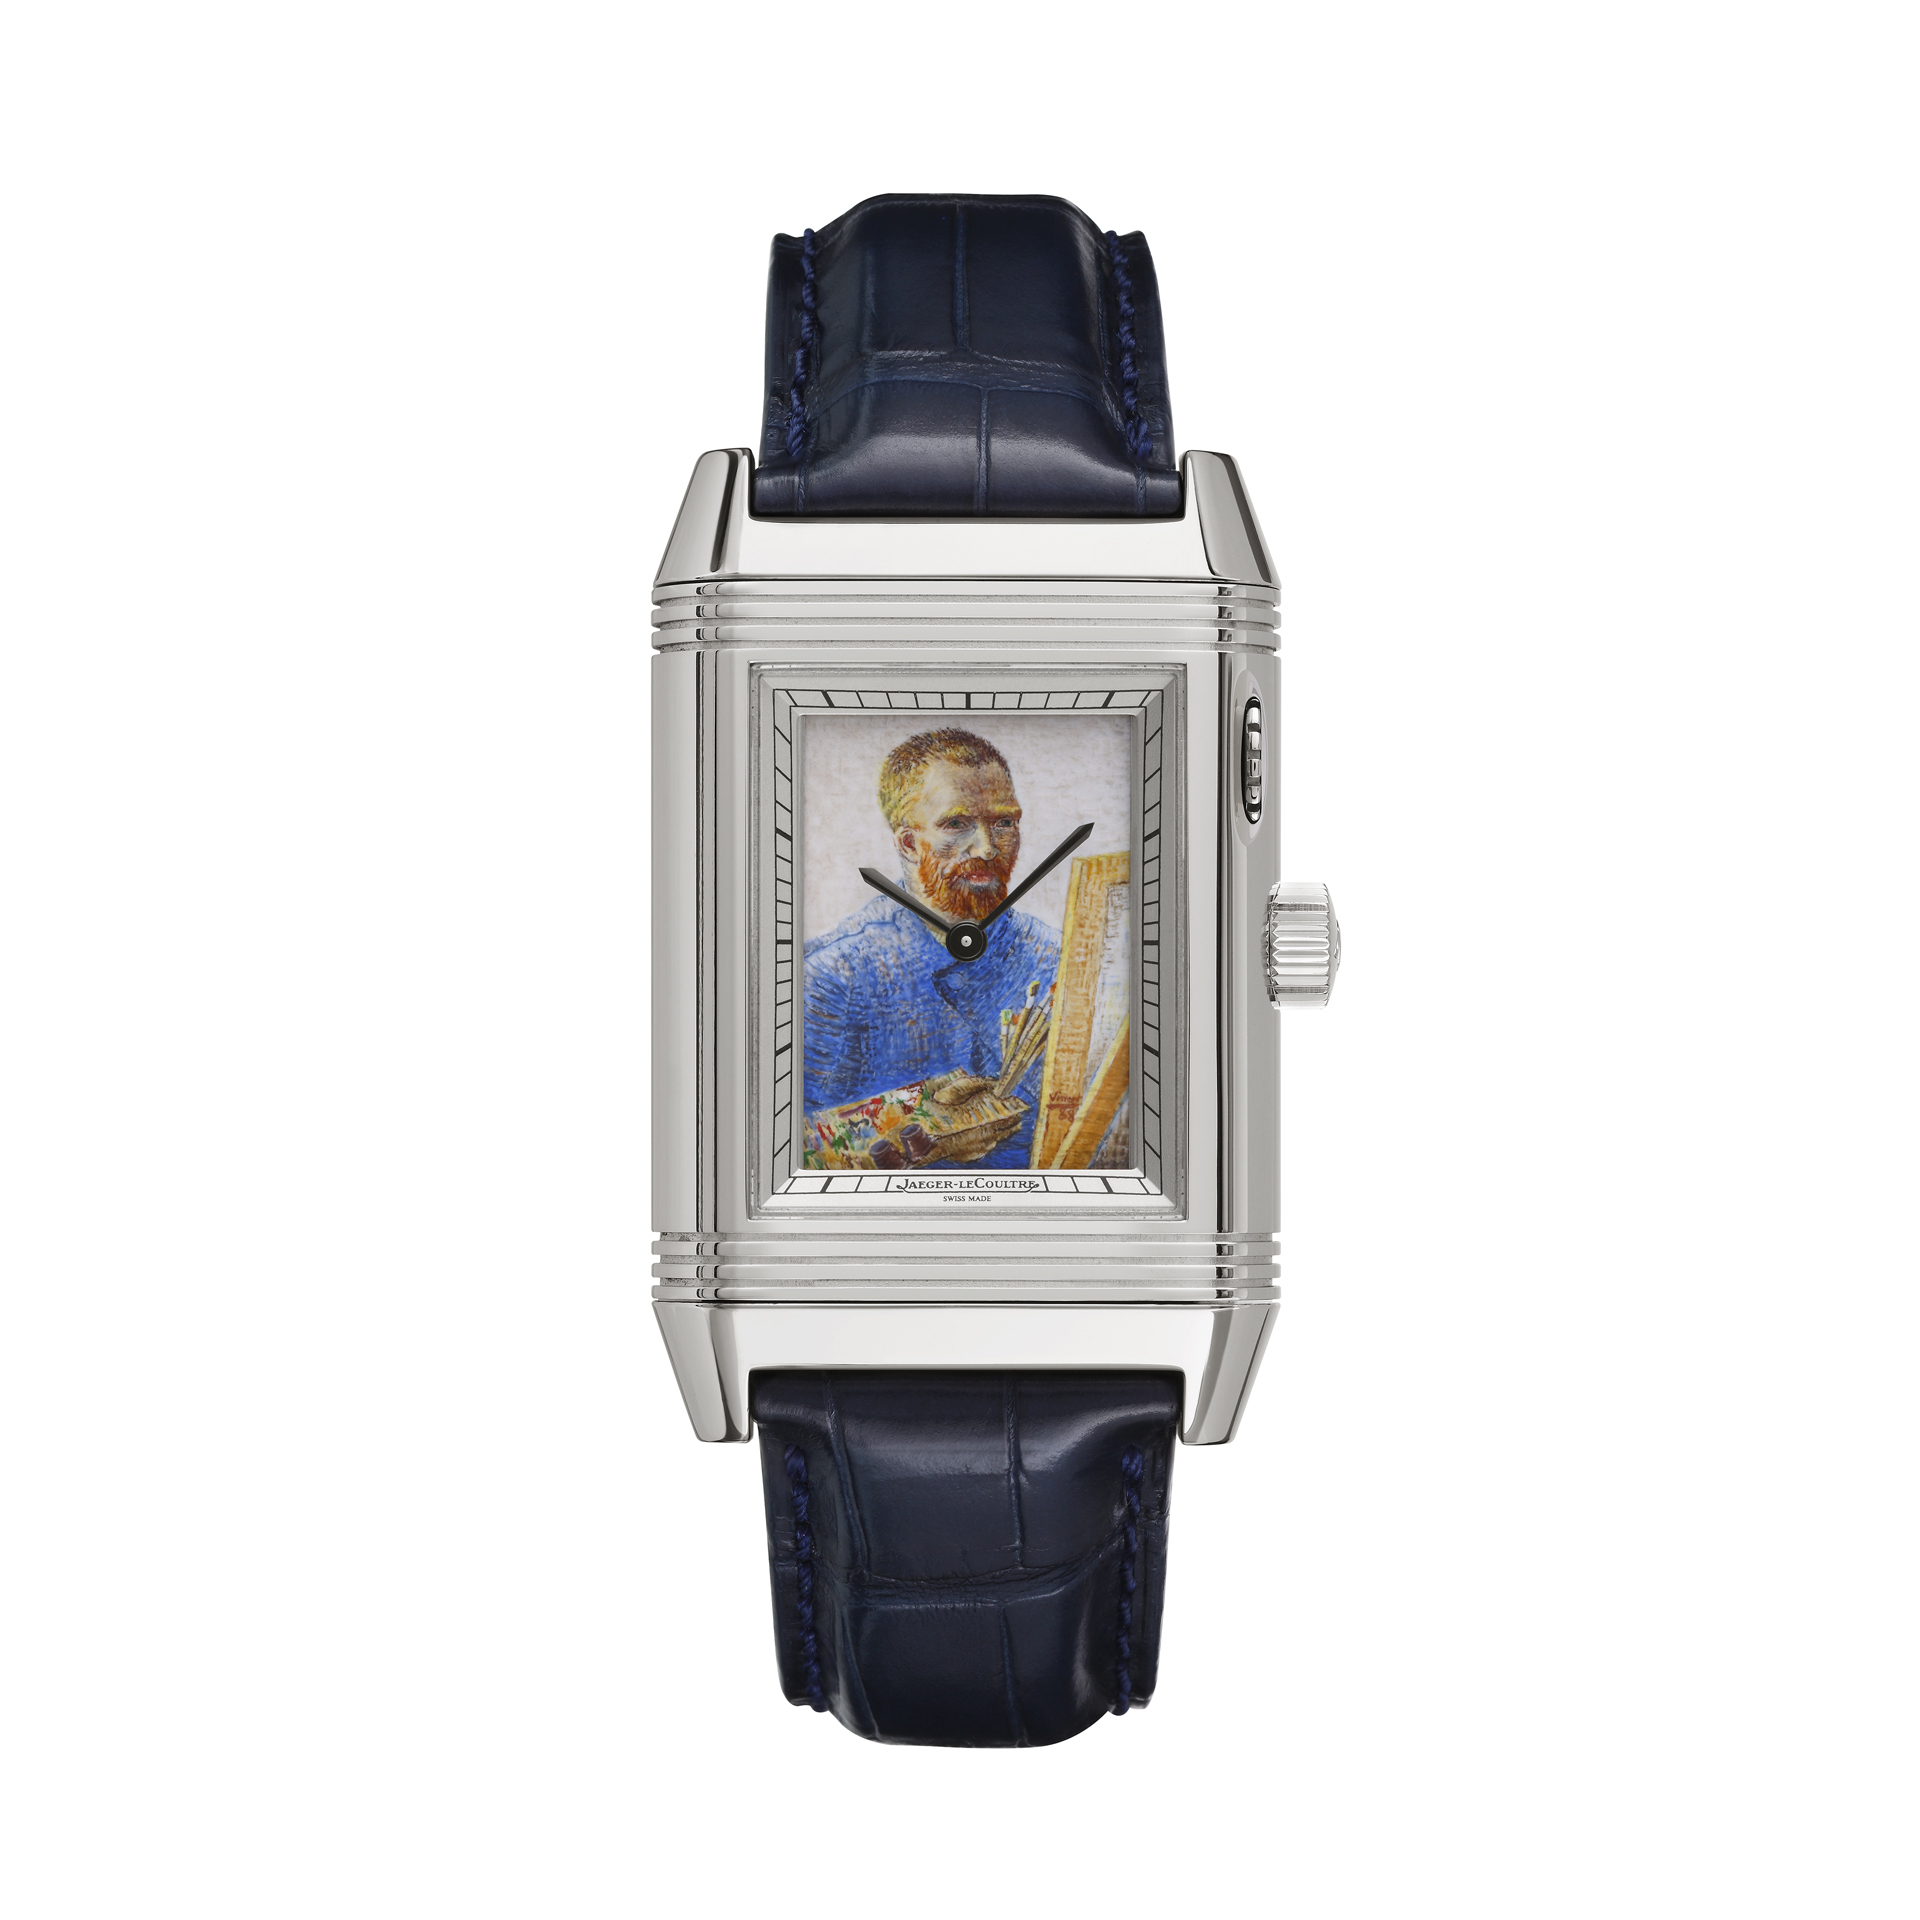 Jaeger-LeCoultre Reverso a Eclipse Self-portrait as a painter